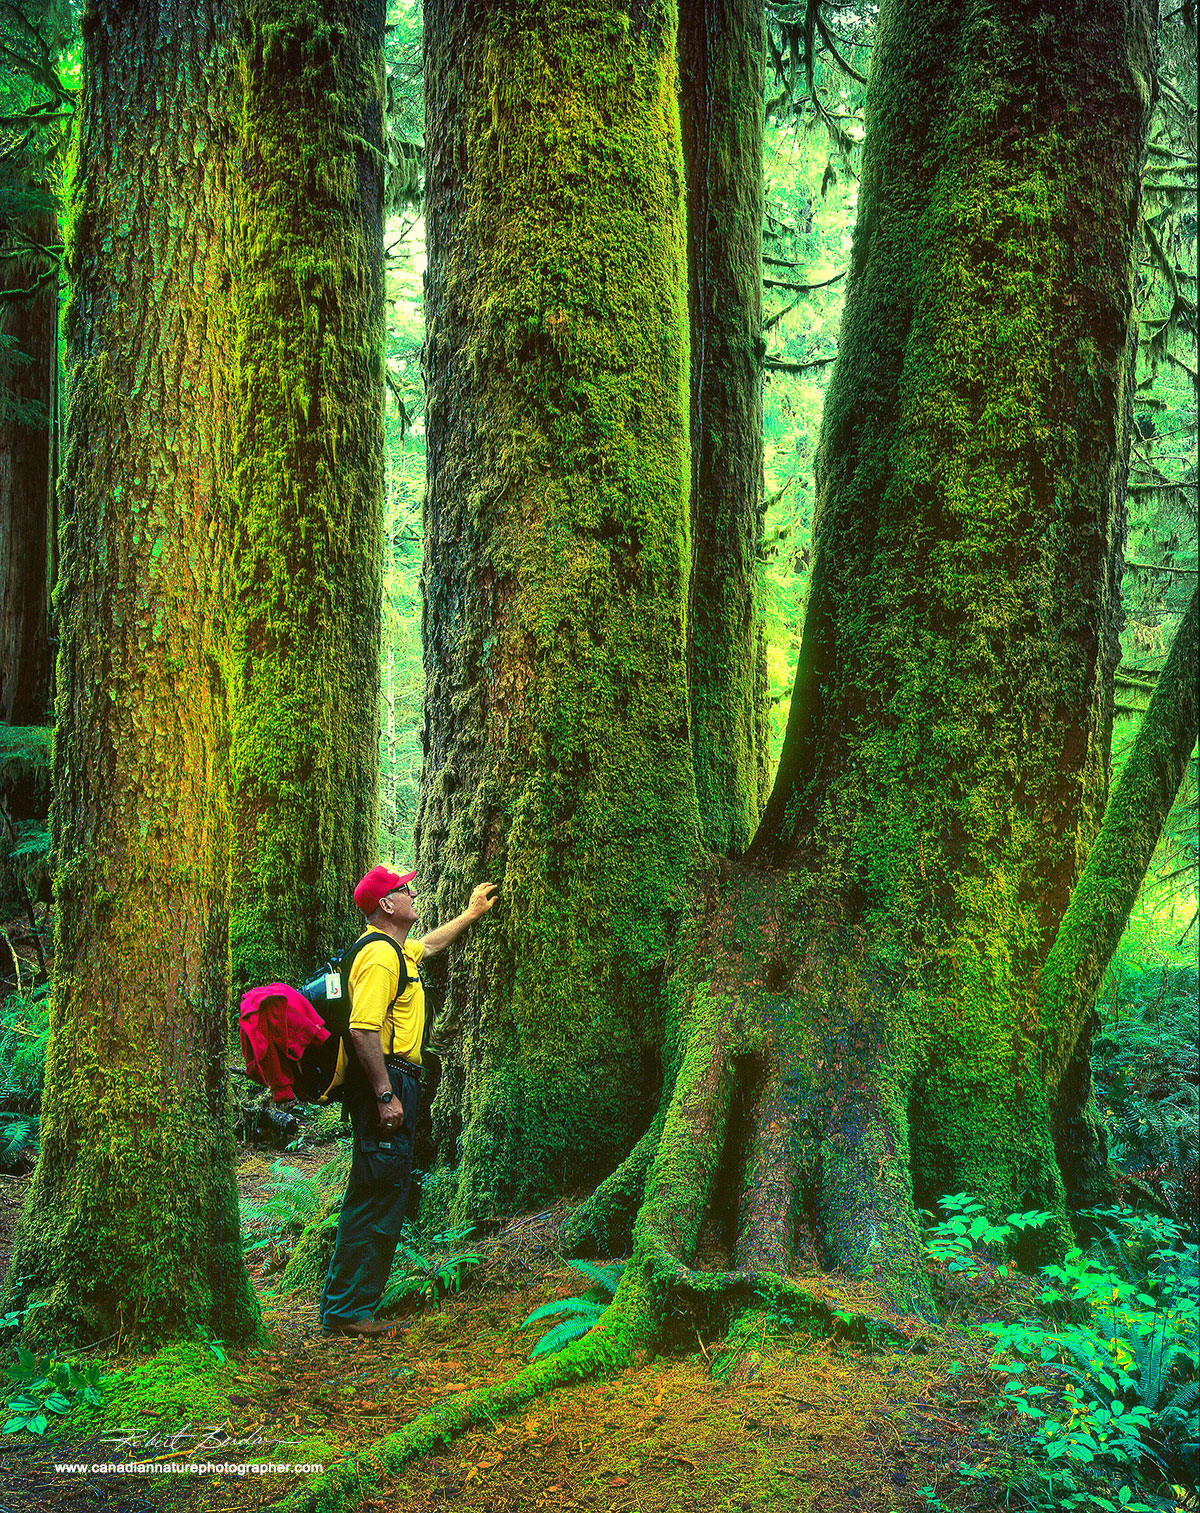 Giant Sitka Spruce in the Carmanah Valley by Robert Berdan ©